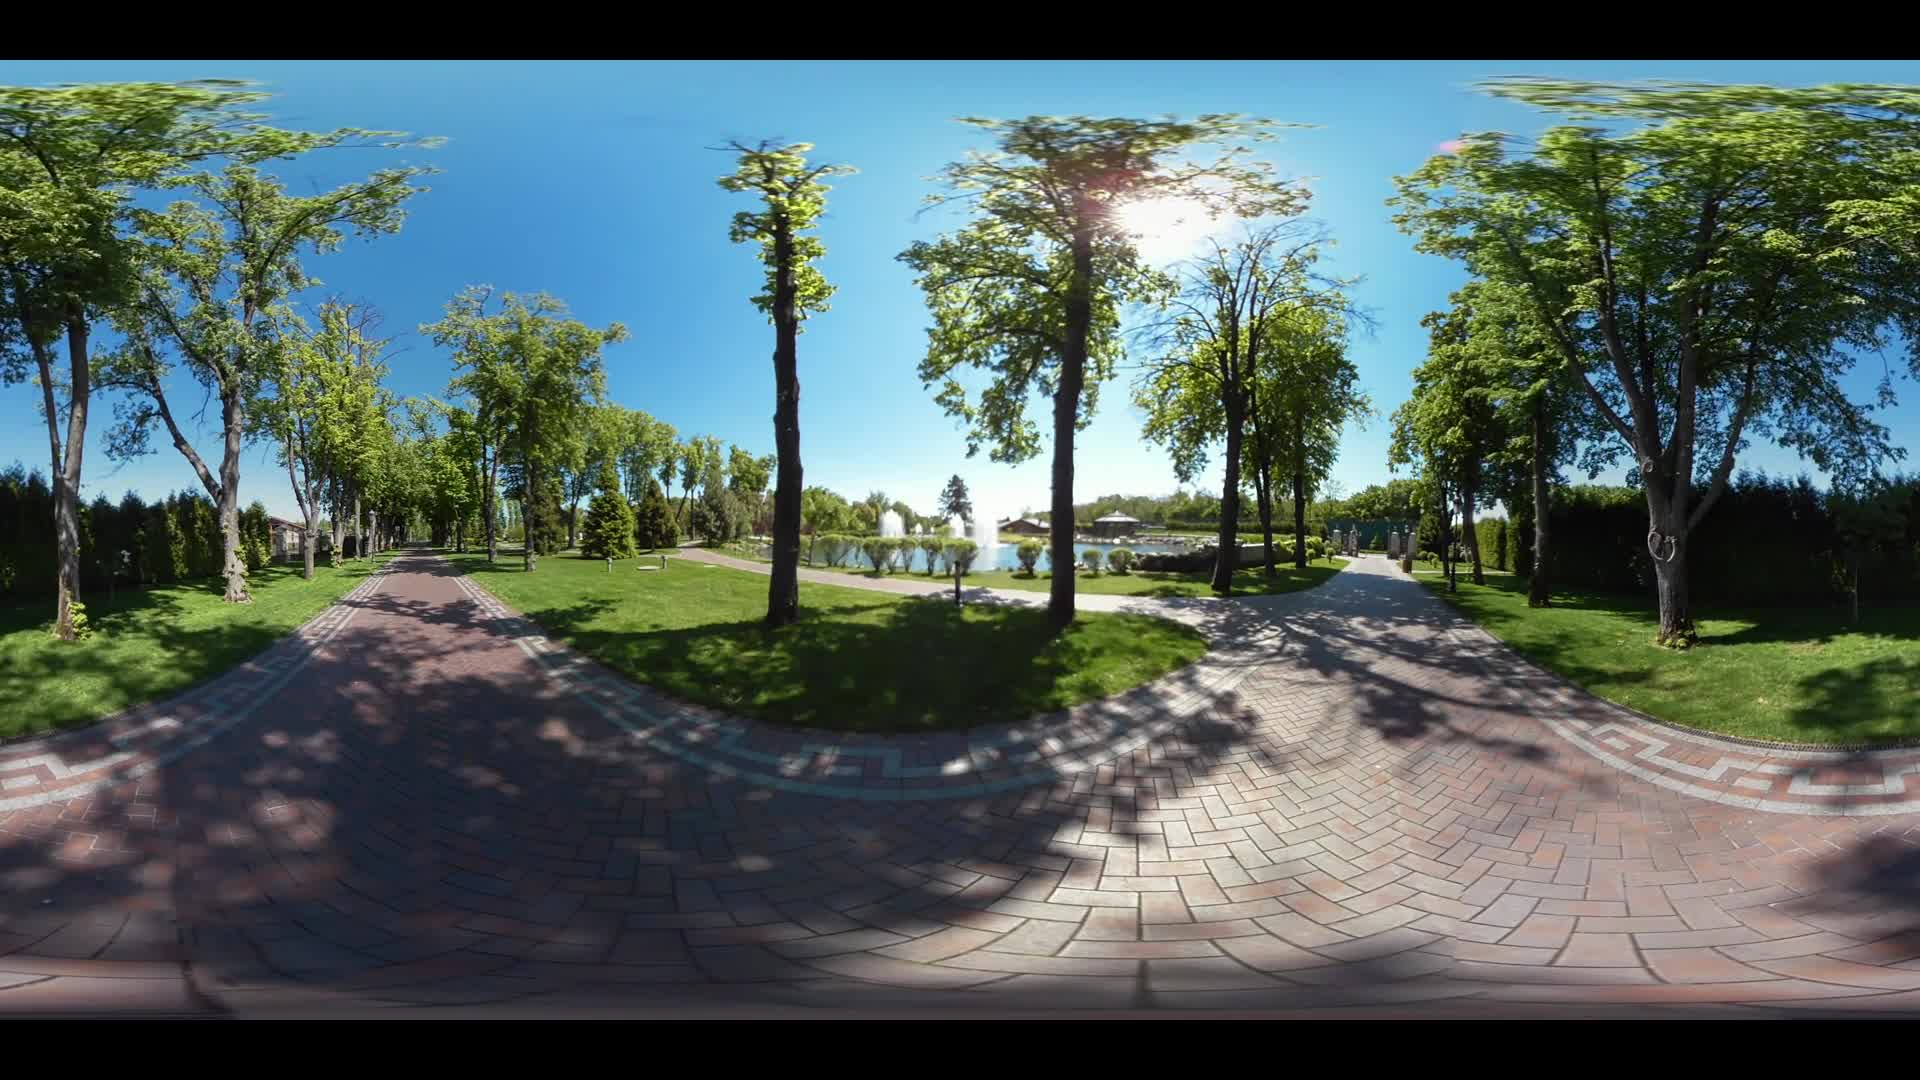 360 degree panorama of beautiful park landscape. Stone pathway in summer garden landscape. Summer park walkway with planting trees. 360 degrees of park pathway